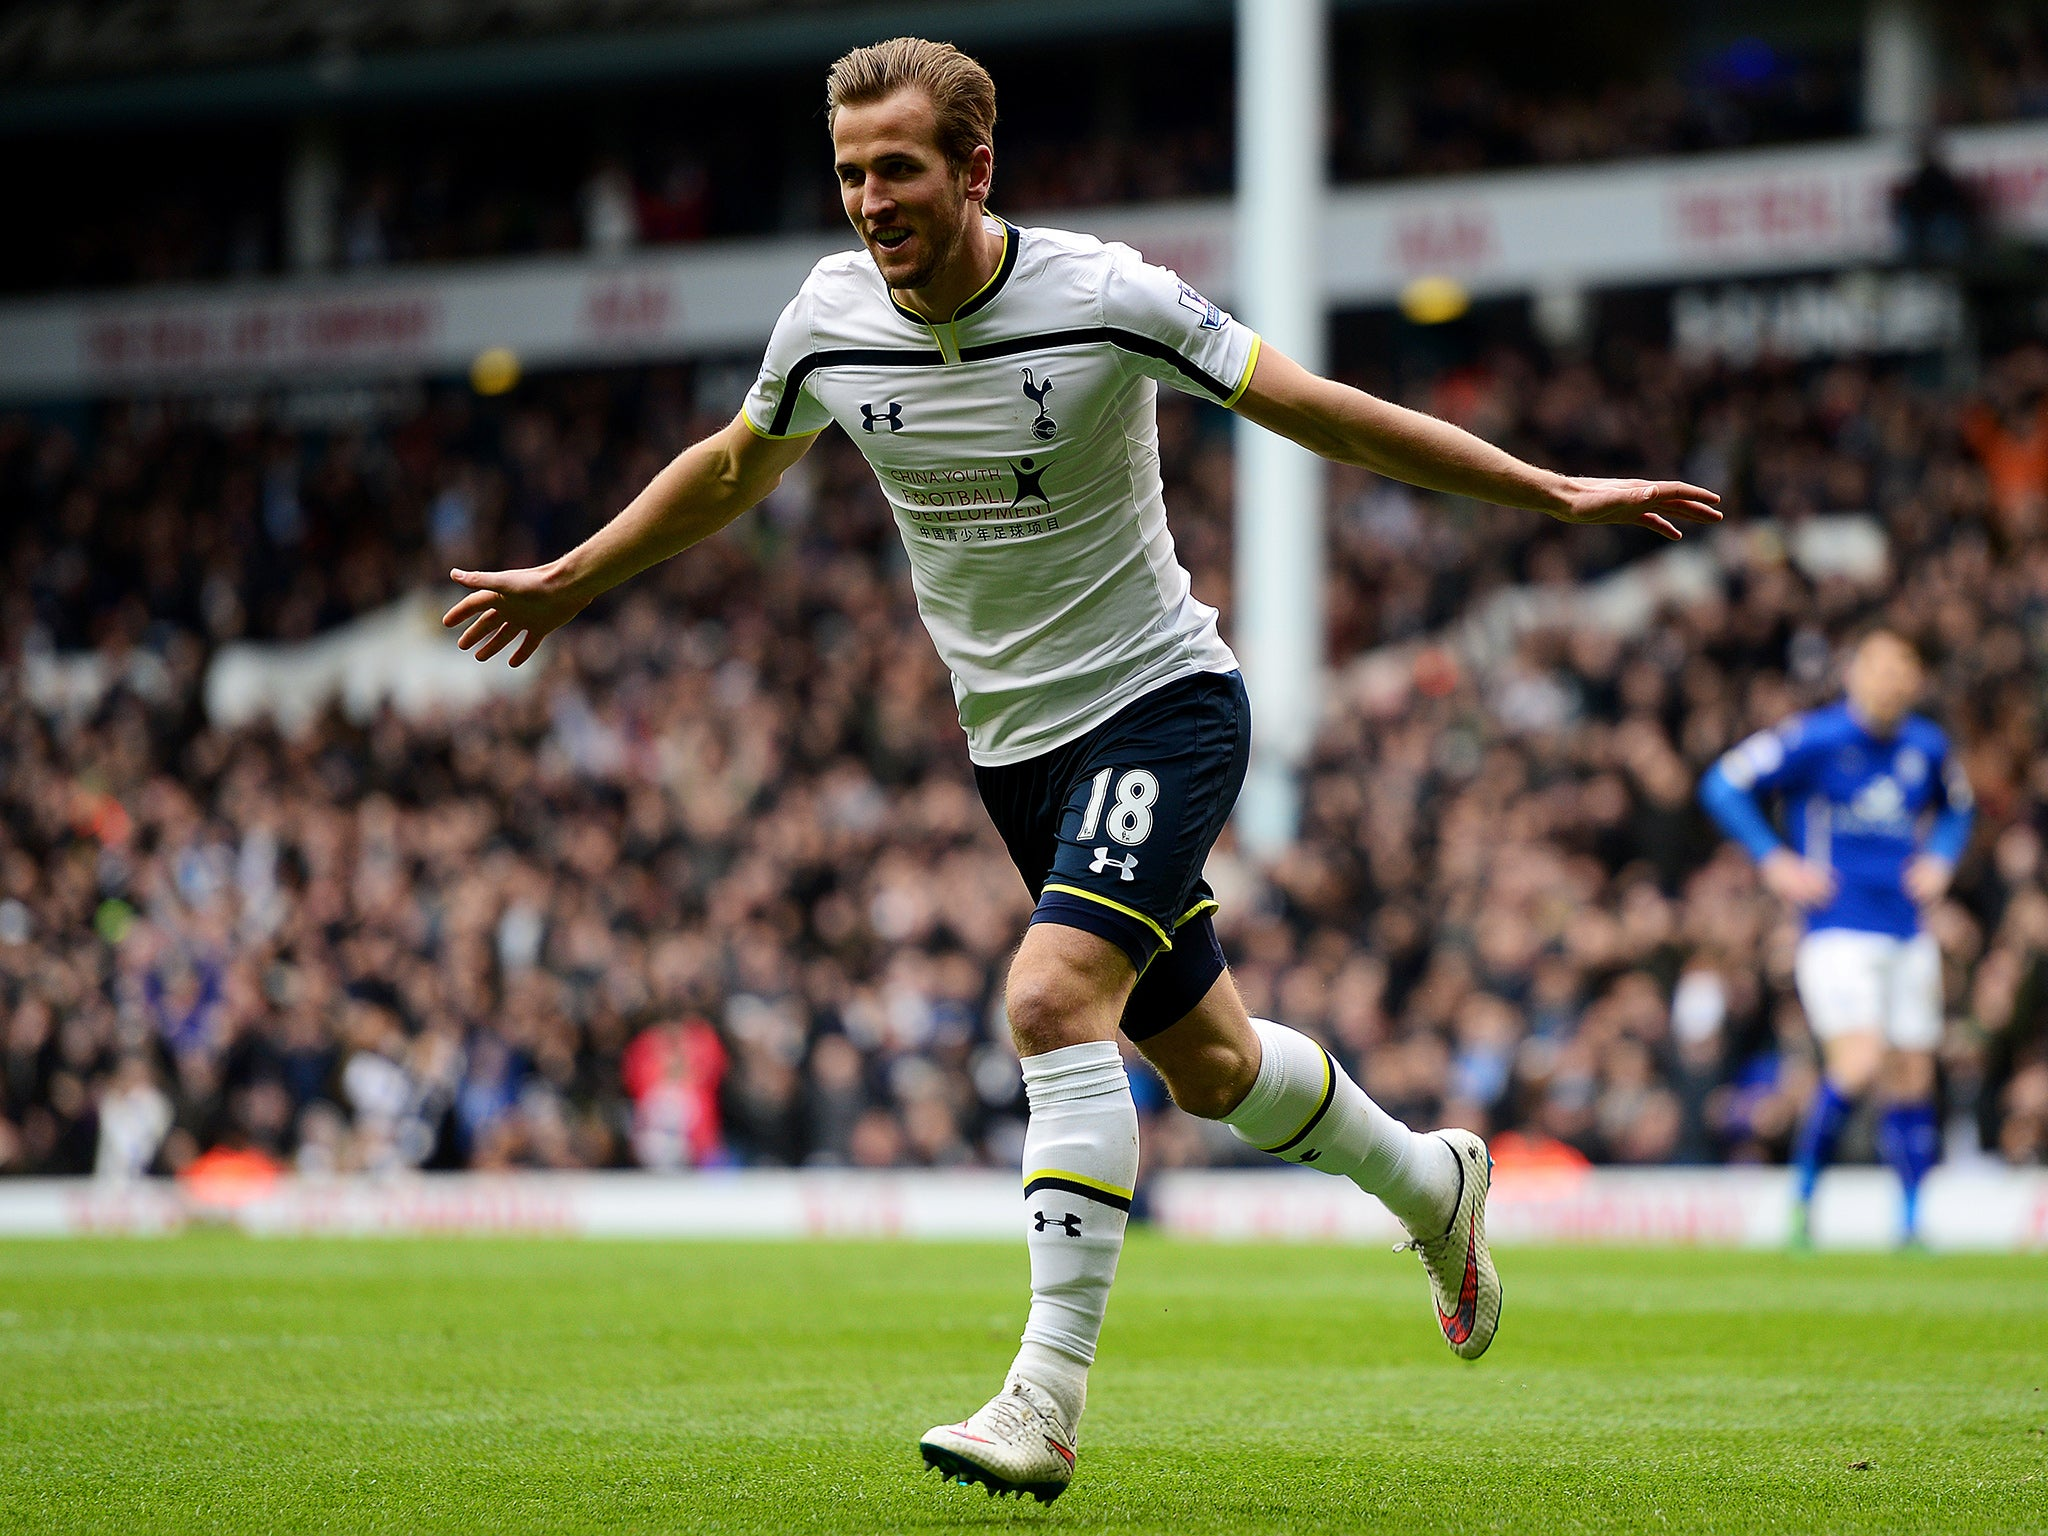 tottenham vs leicester match report brilliant harry kane hat trick sees spurs bounce back from old trafford defeat the independent the independent tottenham vs leicester match report